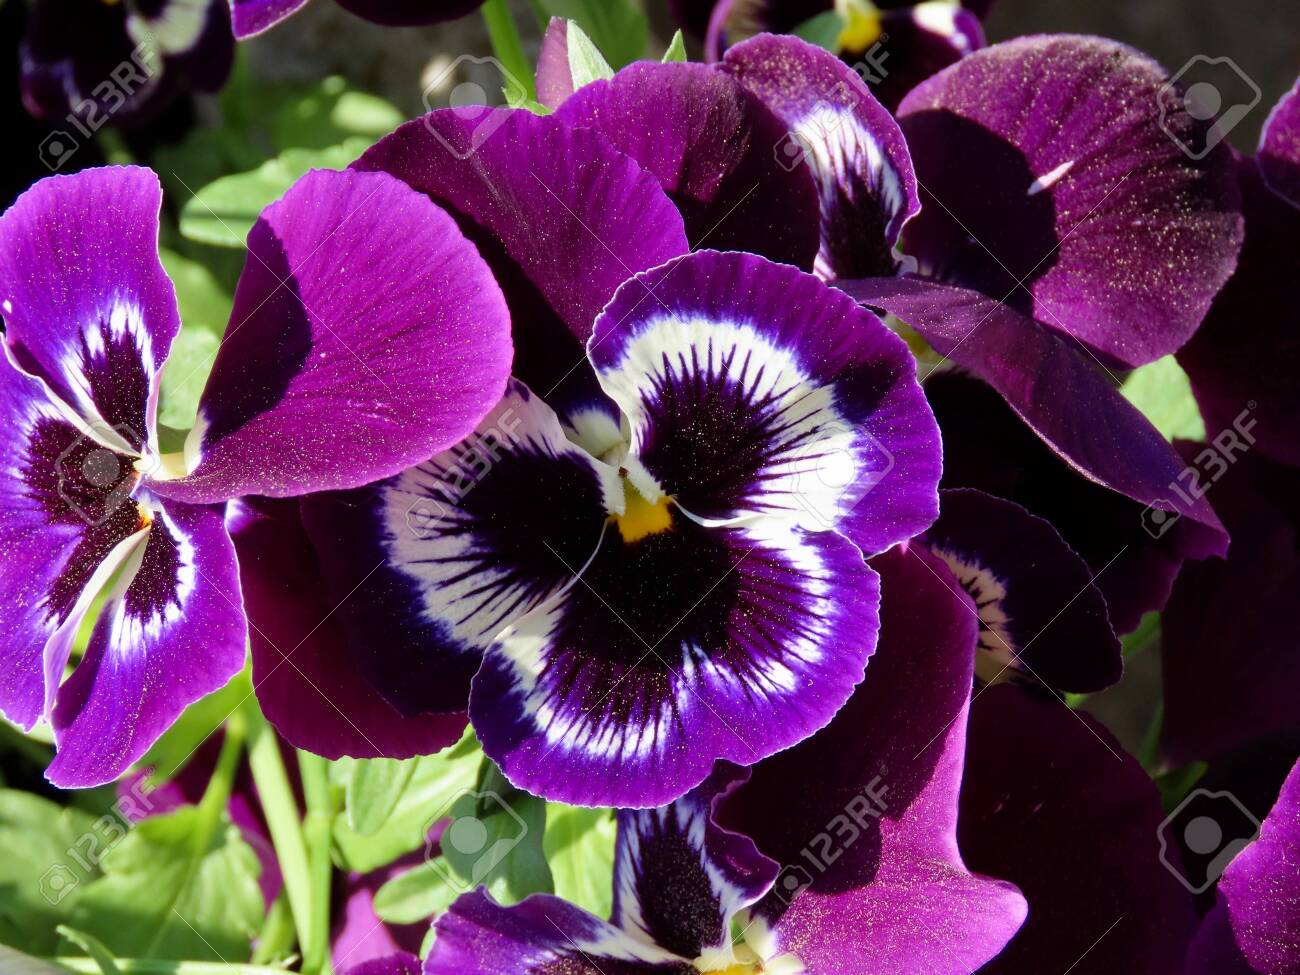 Flower pot with lilac colored pansies - Viola tricolor var. hortensis close up - 146484954